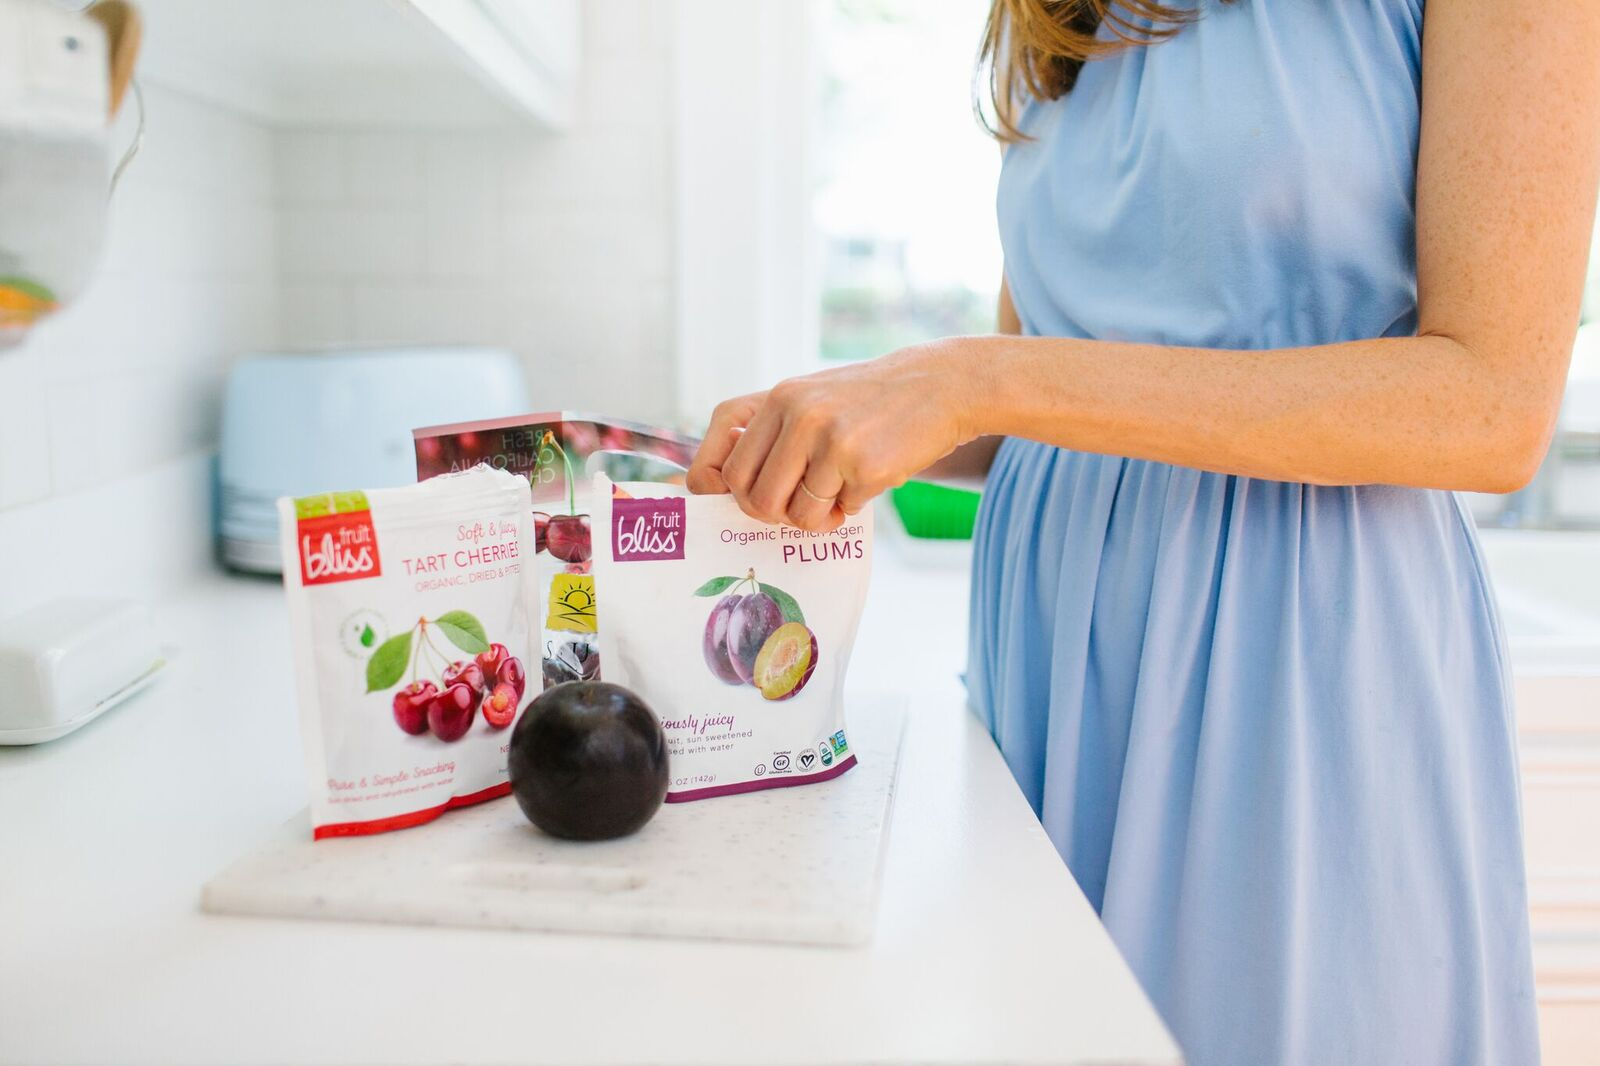 Fruit Bliss Organic Plum Snacks